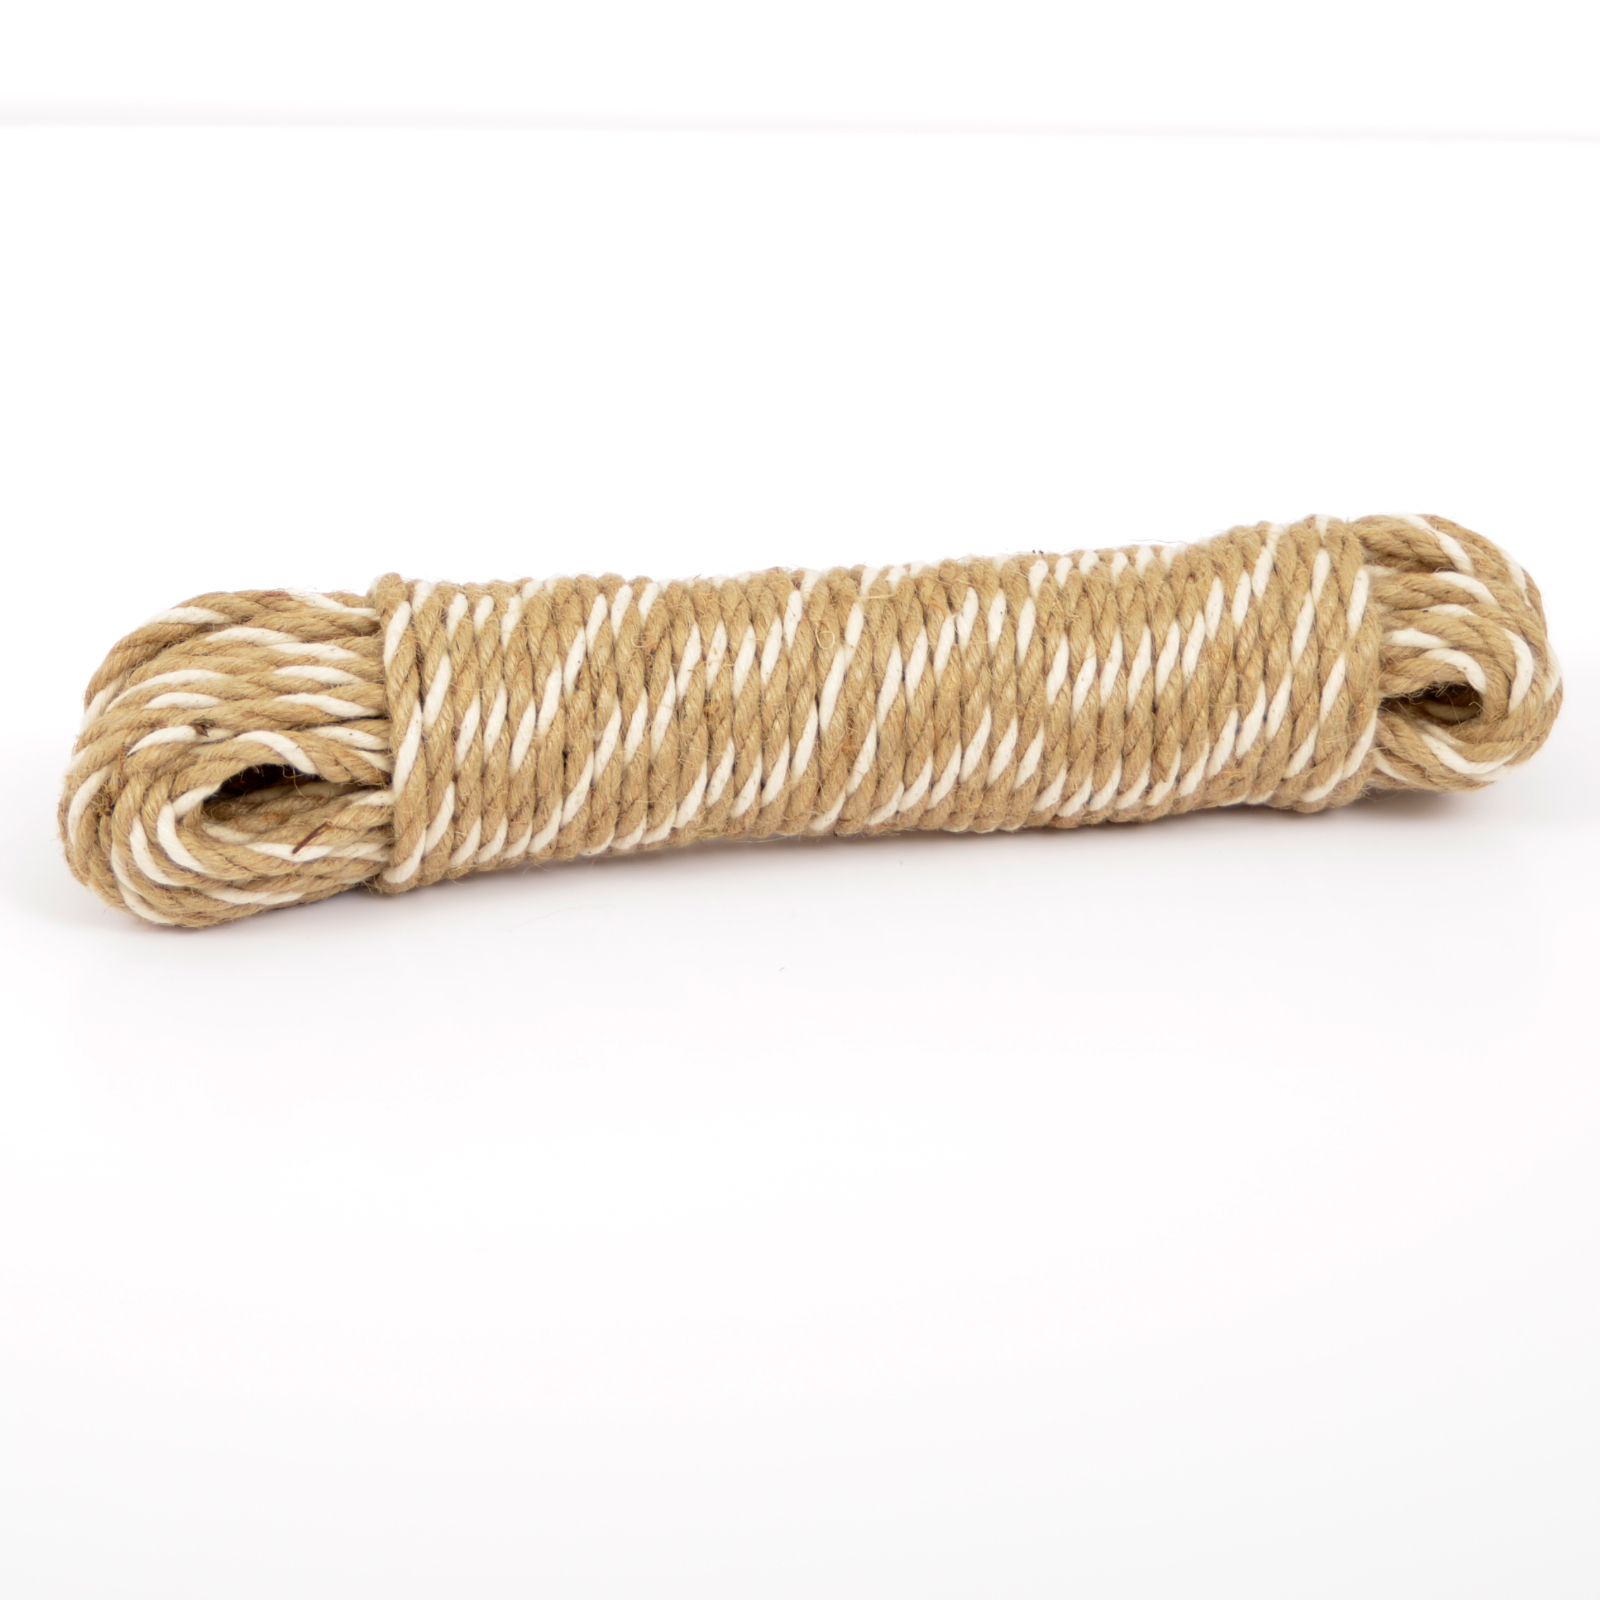 6MM EVERLASTO MIXED FIBRE TWISTED ROPE 25M